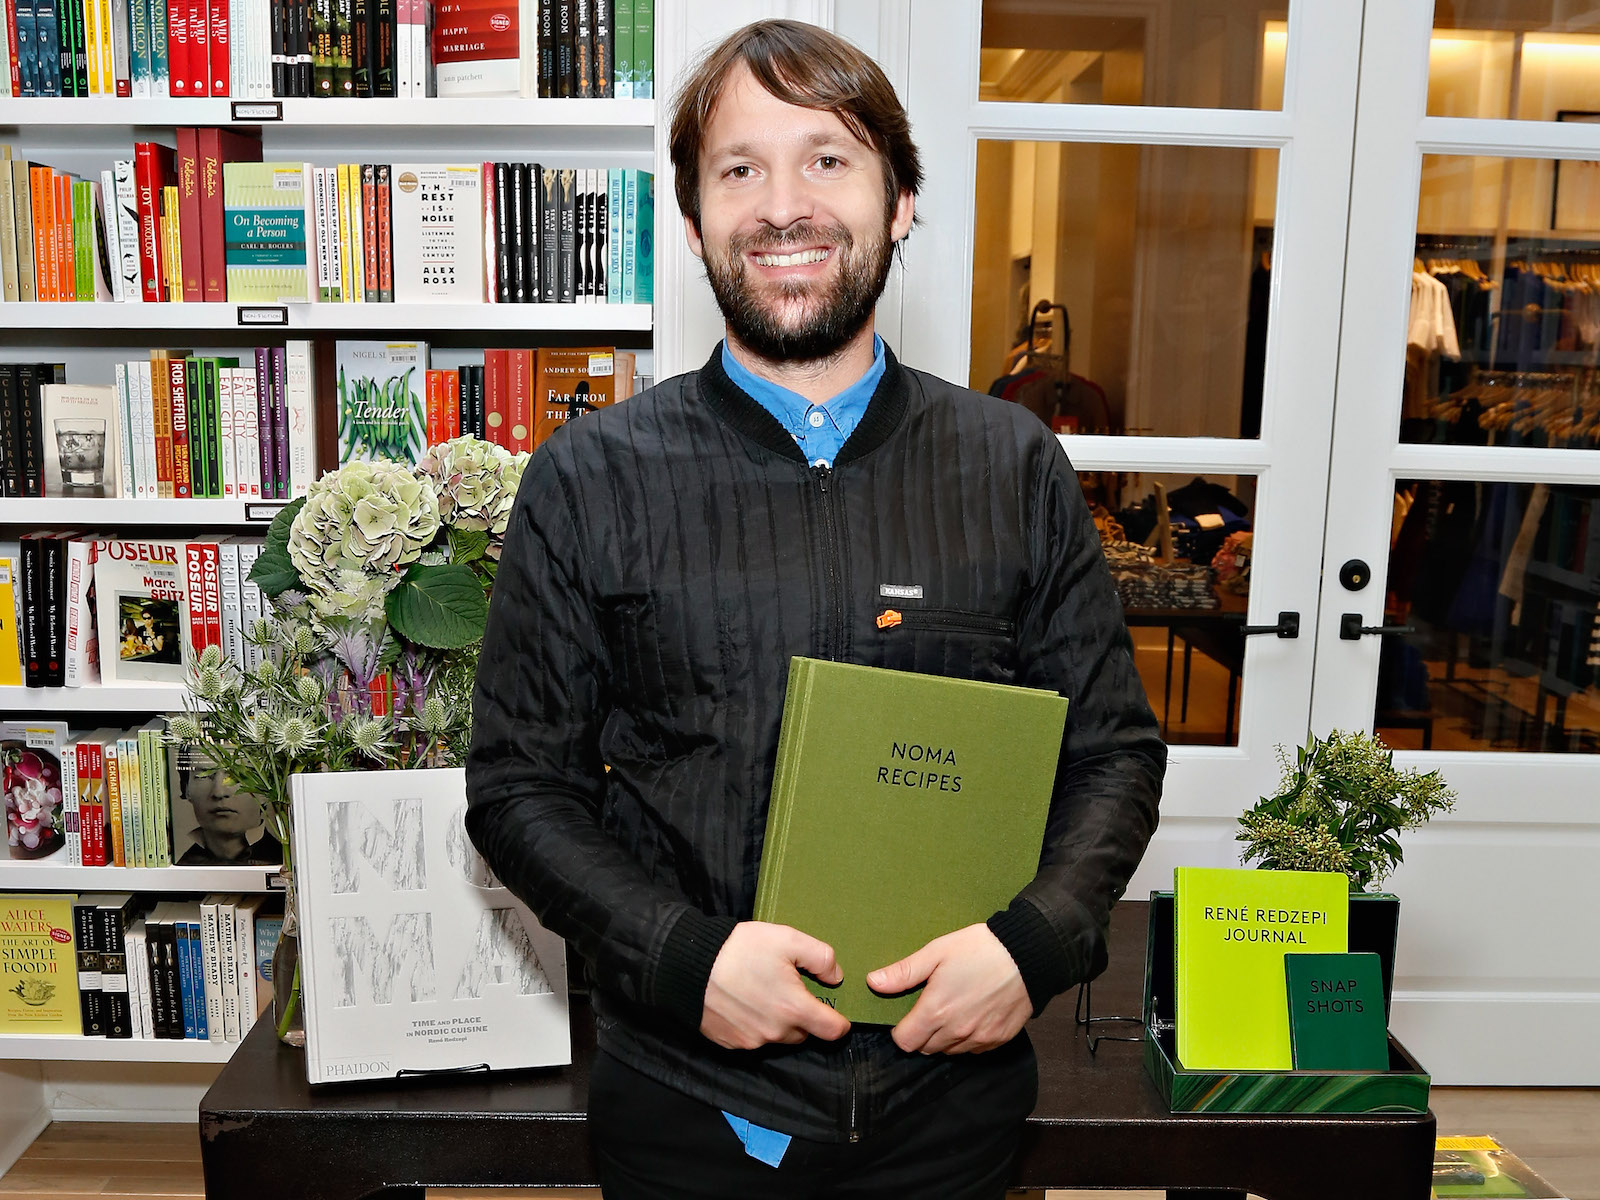 René Redzepi Shows Off How Noma's Menu Changes for 13 Different Dietary Restrictions